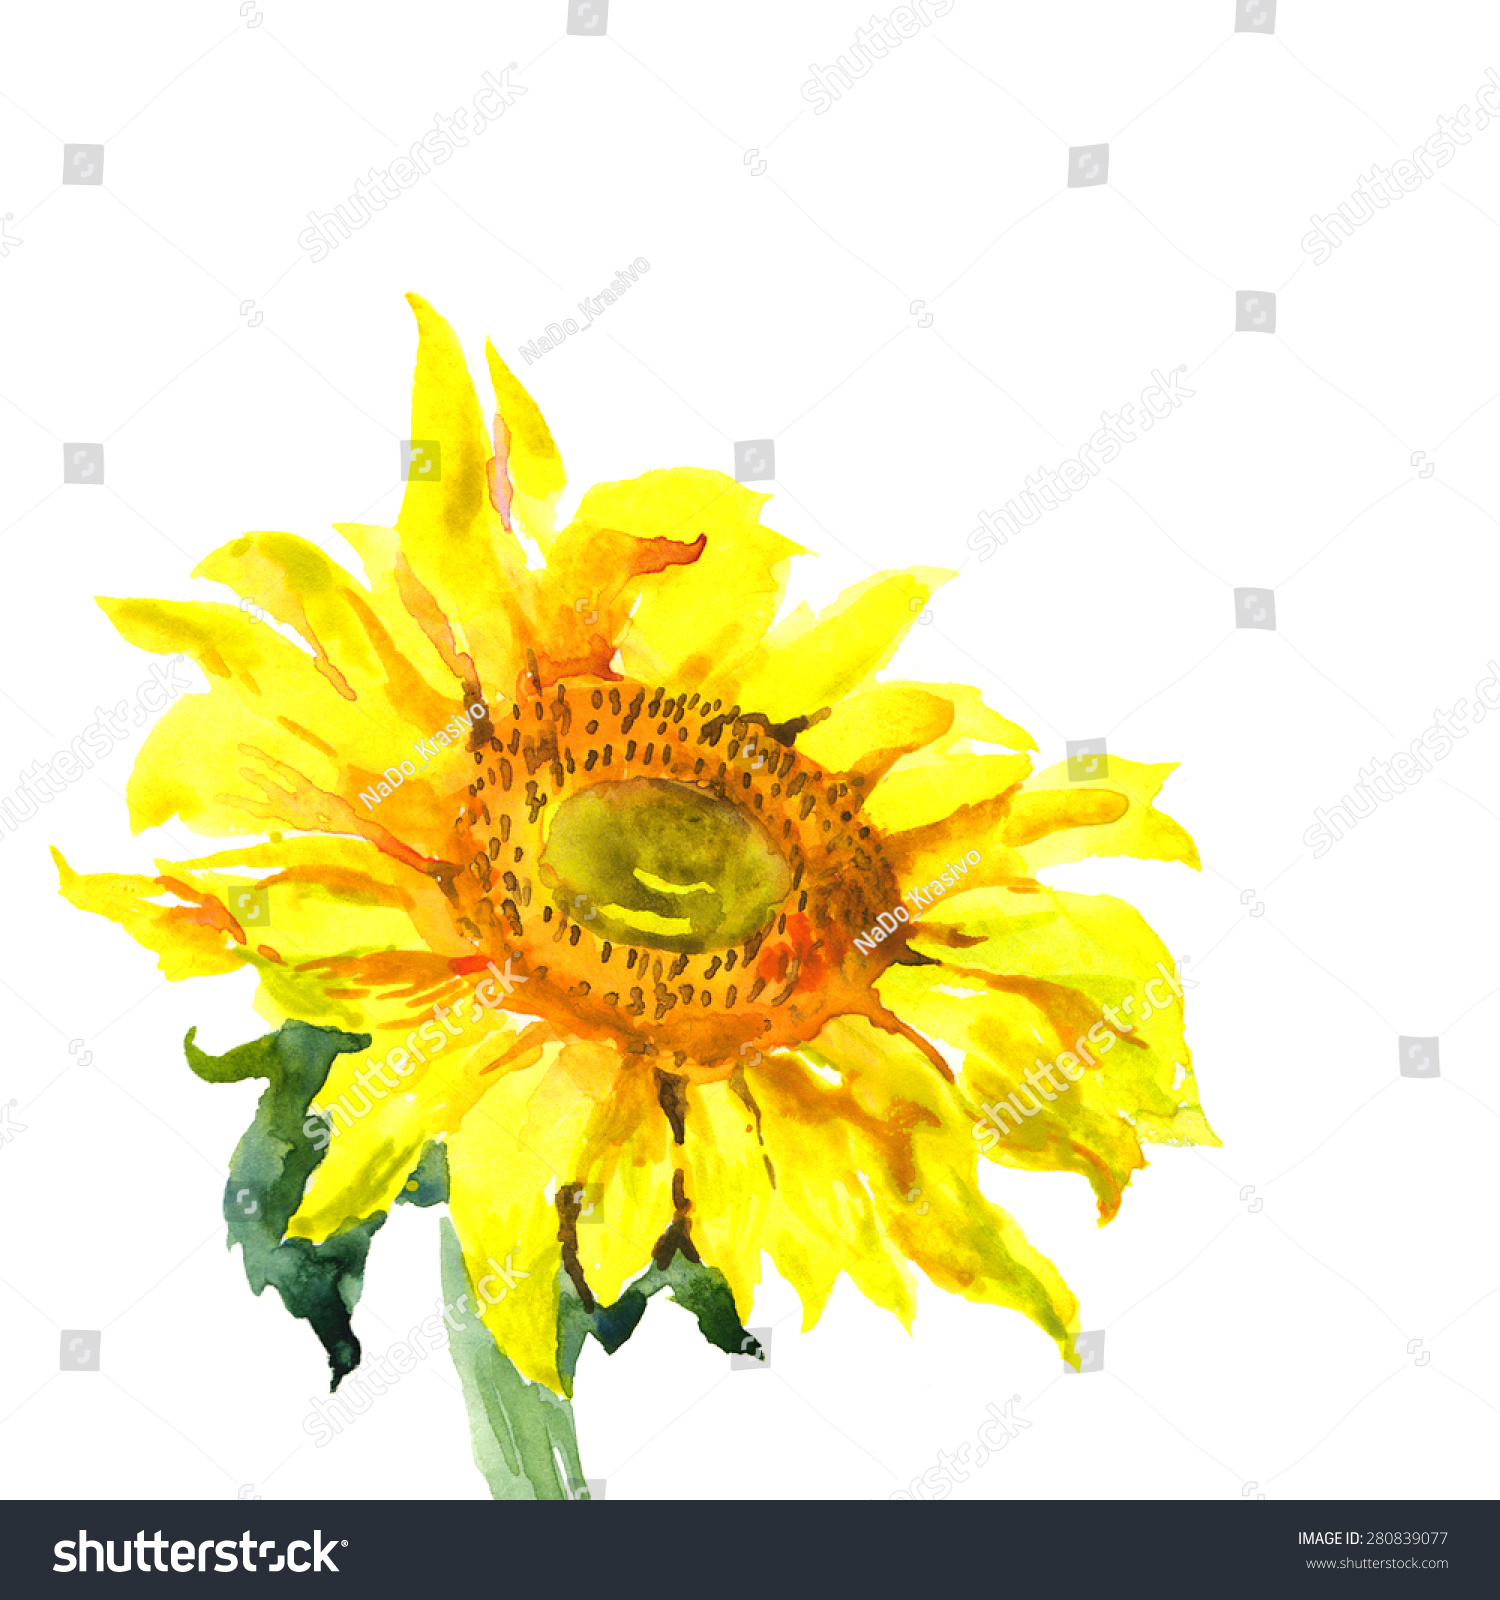 Yellow sunflower illustration photo